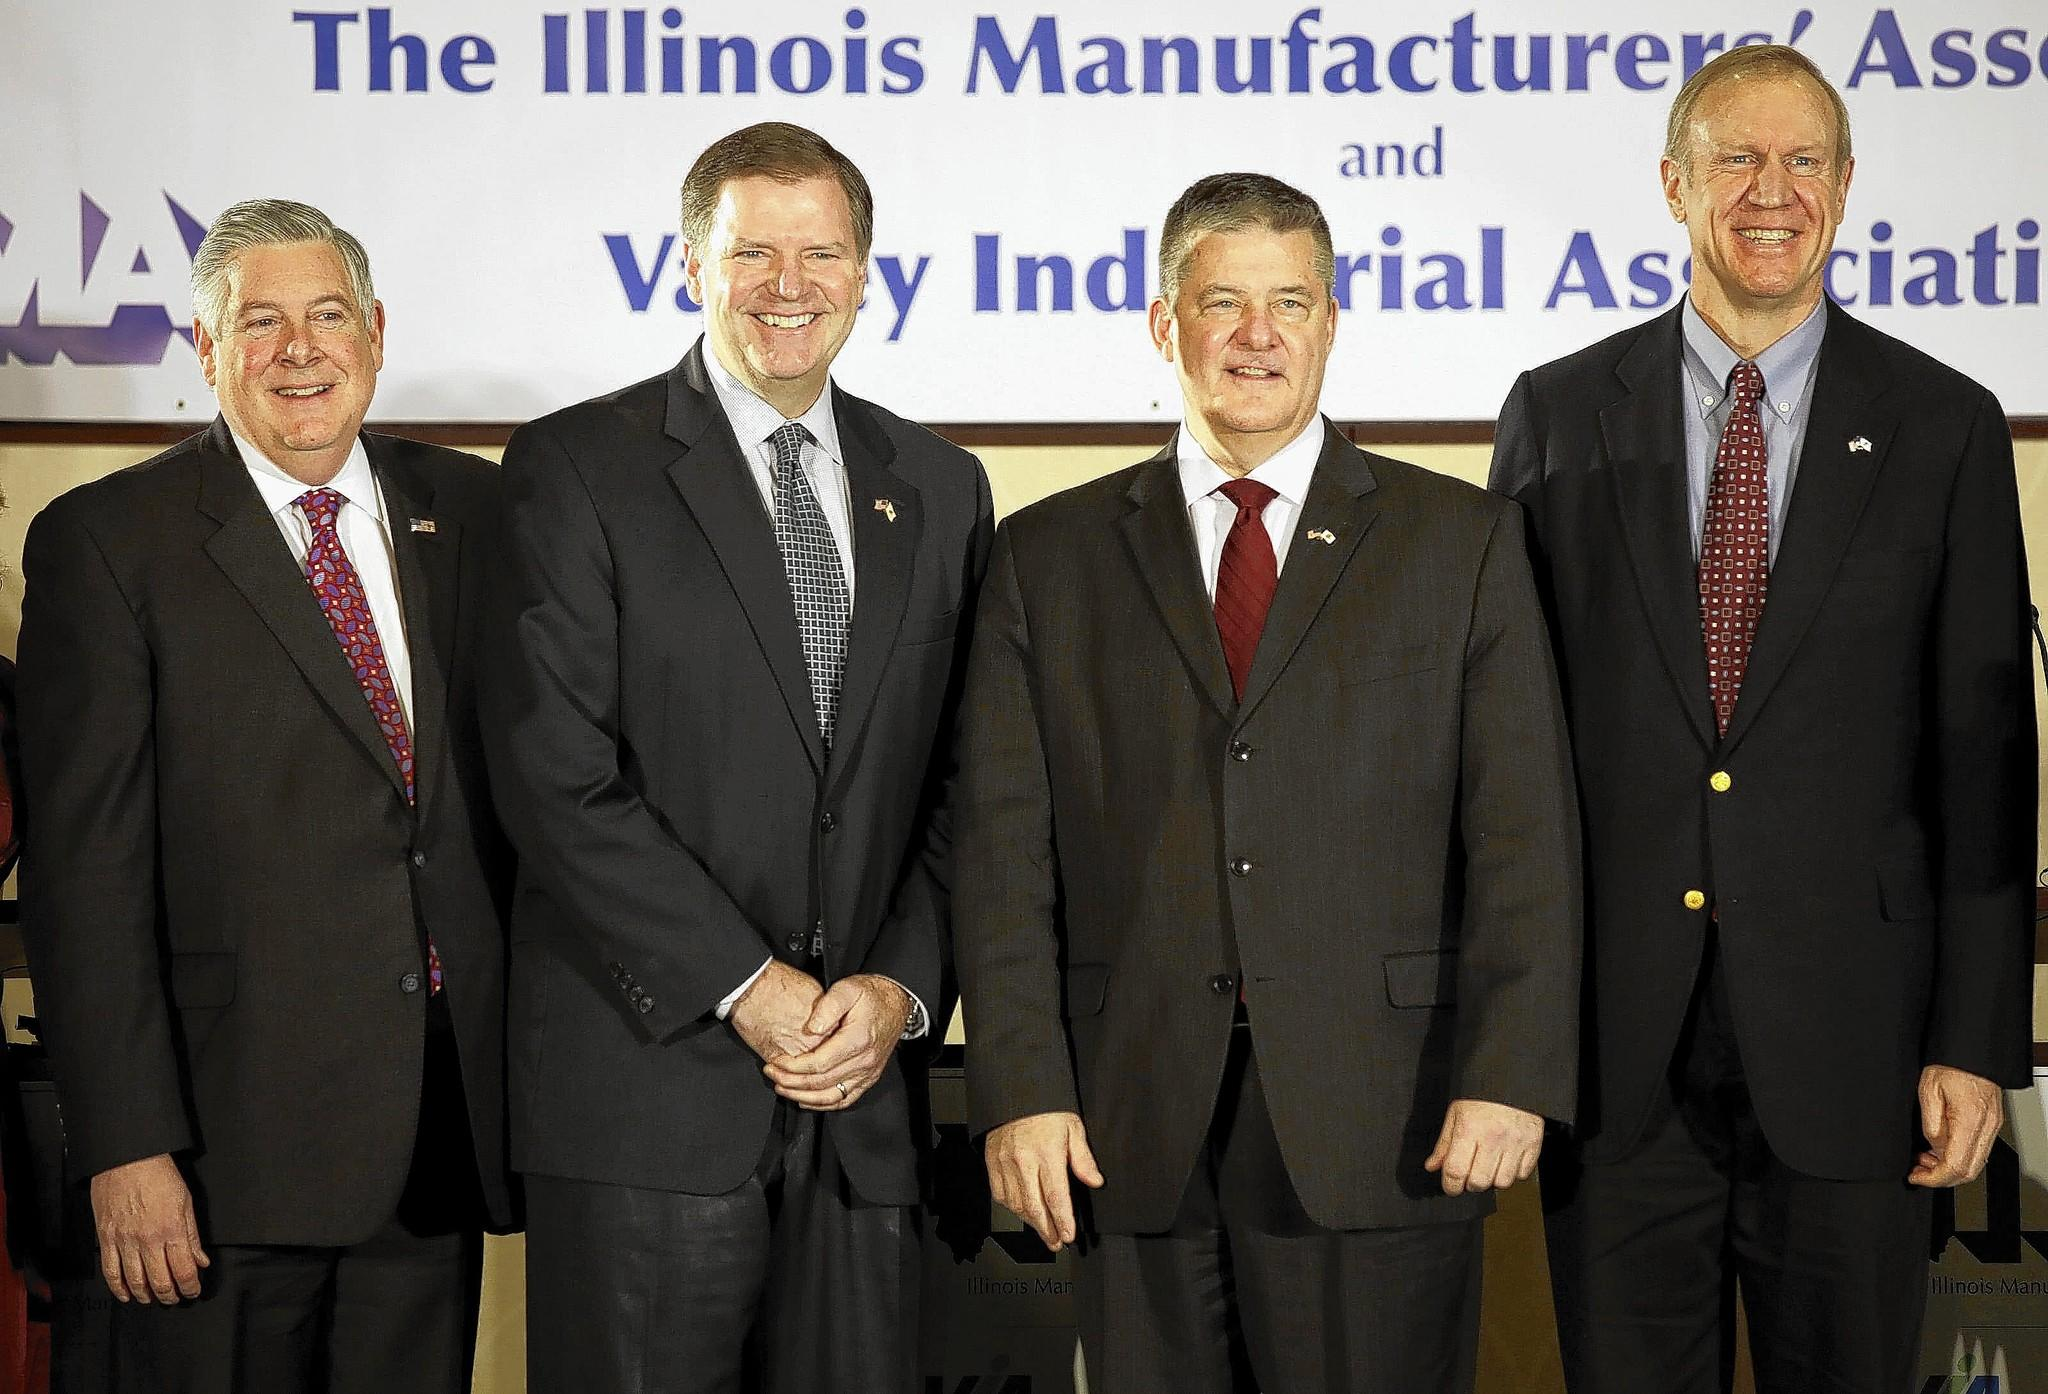 State Sens. Kirk Dillard, from left, and Bill Brady, Treasurer Dan Rutherford and businessman Bruce Rauner have faced few questions about abortion and other social issues in the Illinois Republican gubernatorial primary campaign.